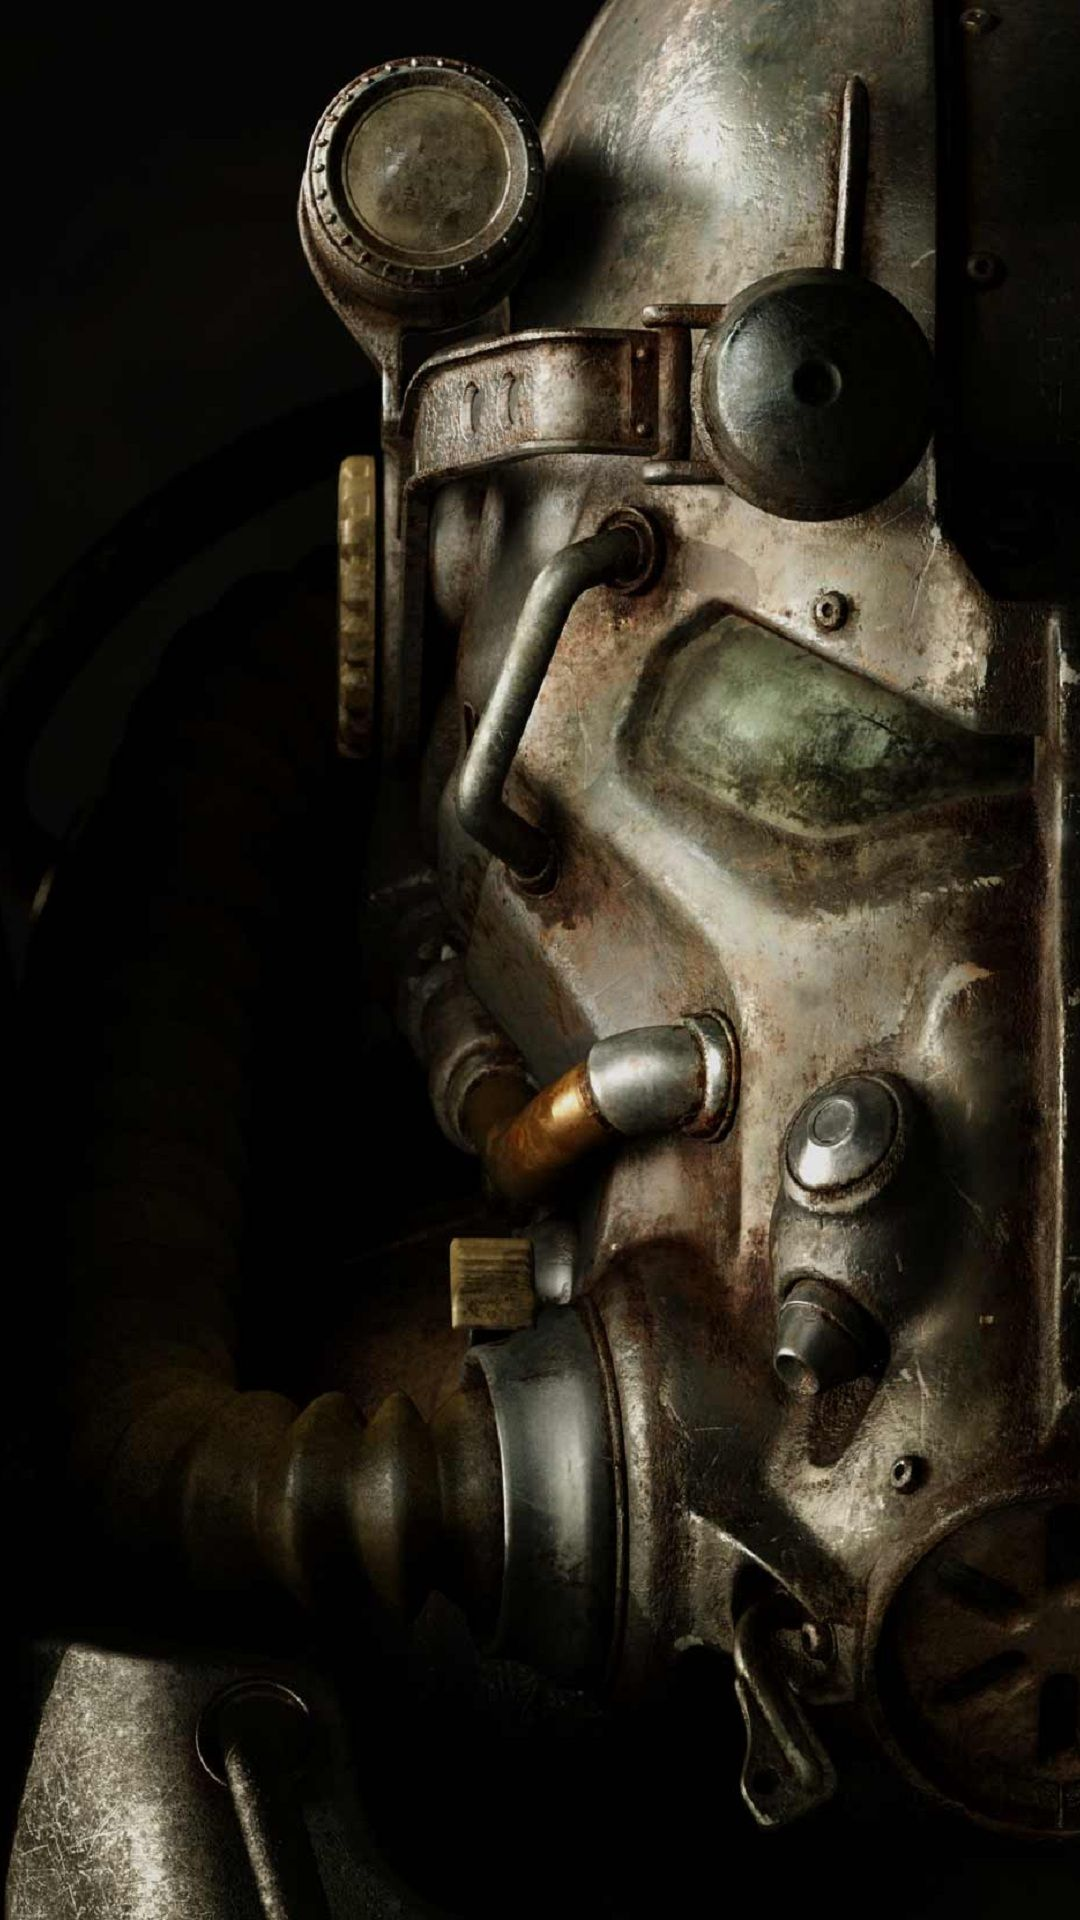 Fallout 4 1080x1920 Mobile Wallpapers Fallout Wallpaper Fallout Posters Fallout Fan Art